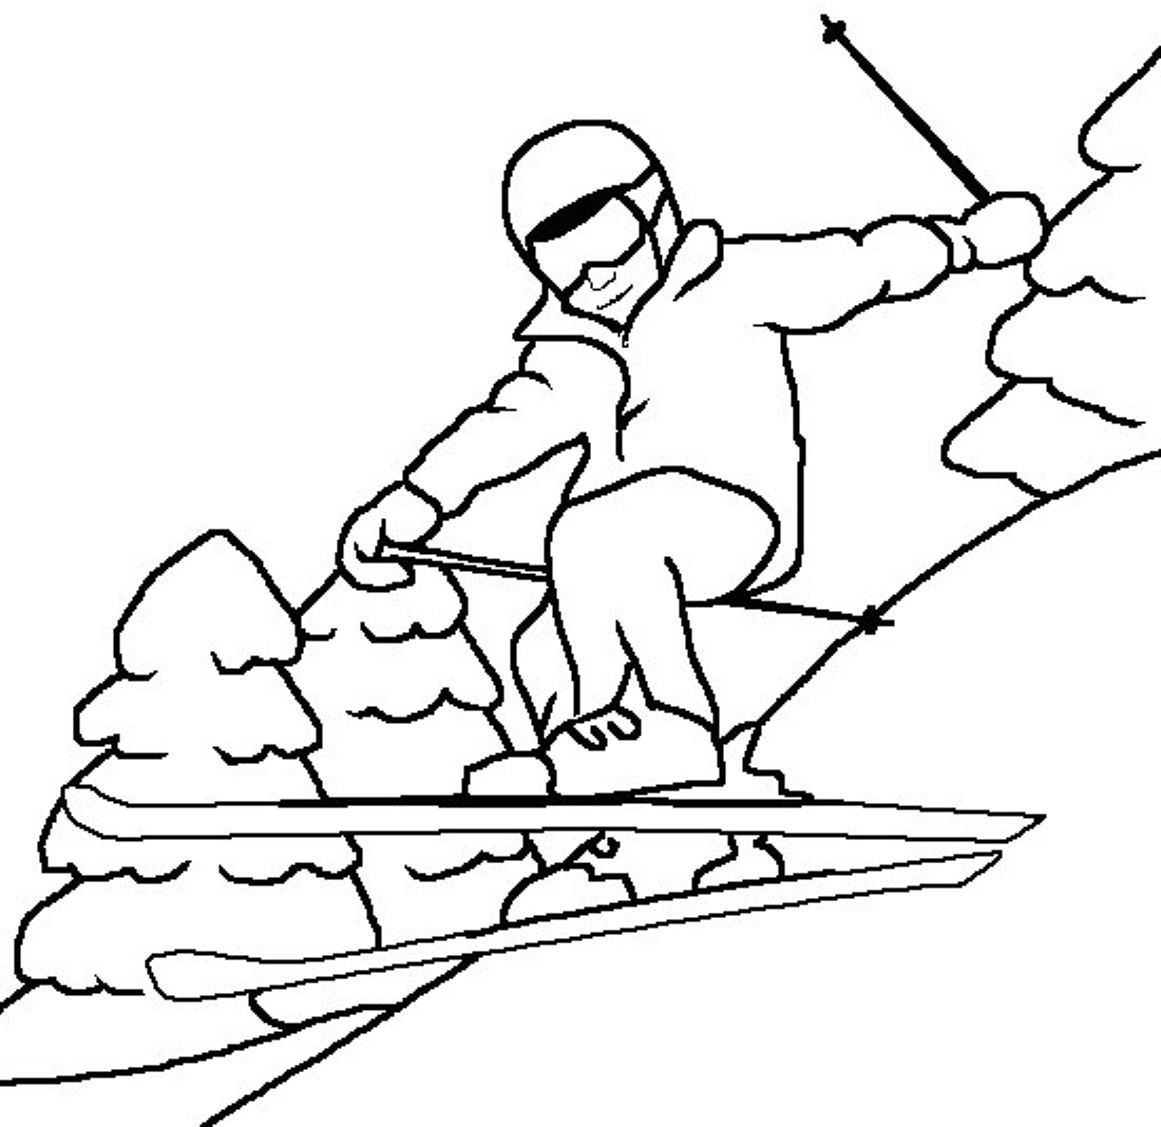 Winter Skiing Coloring Sports Coloring Pages Coloring Pages